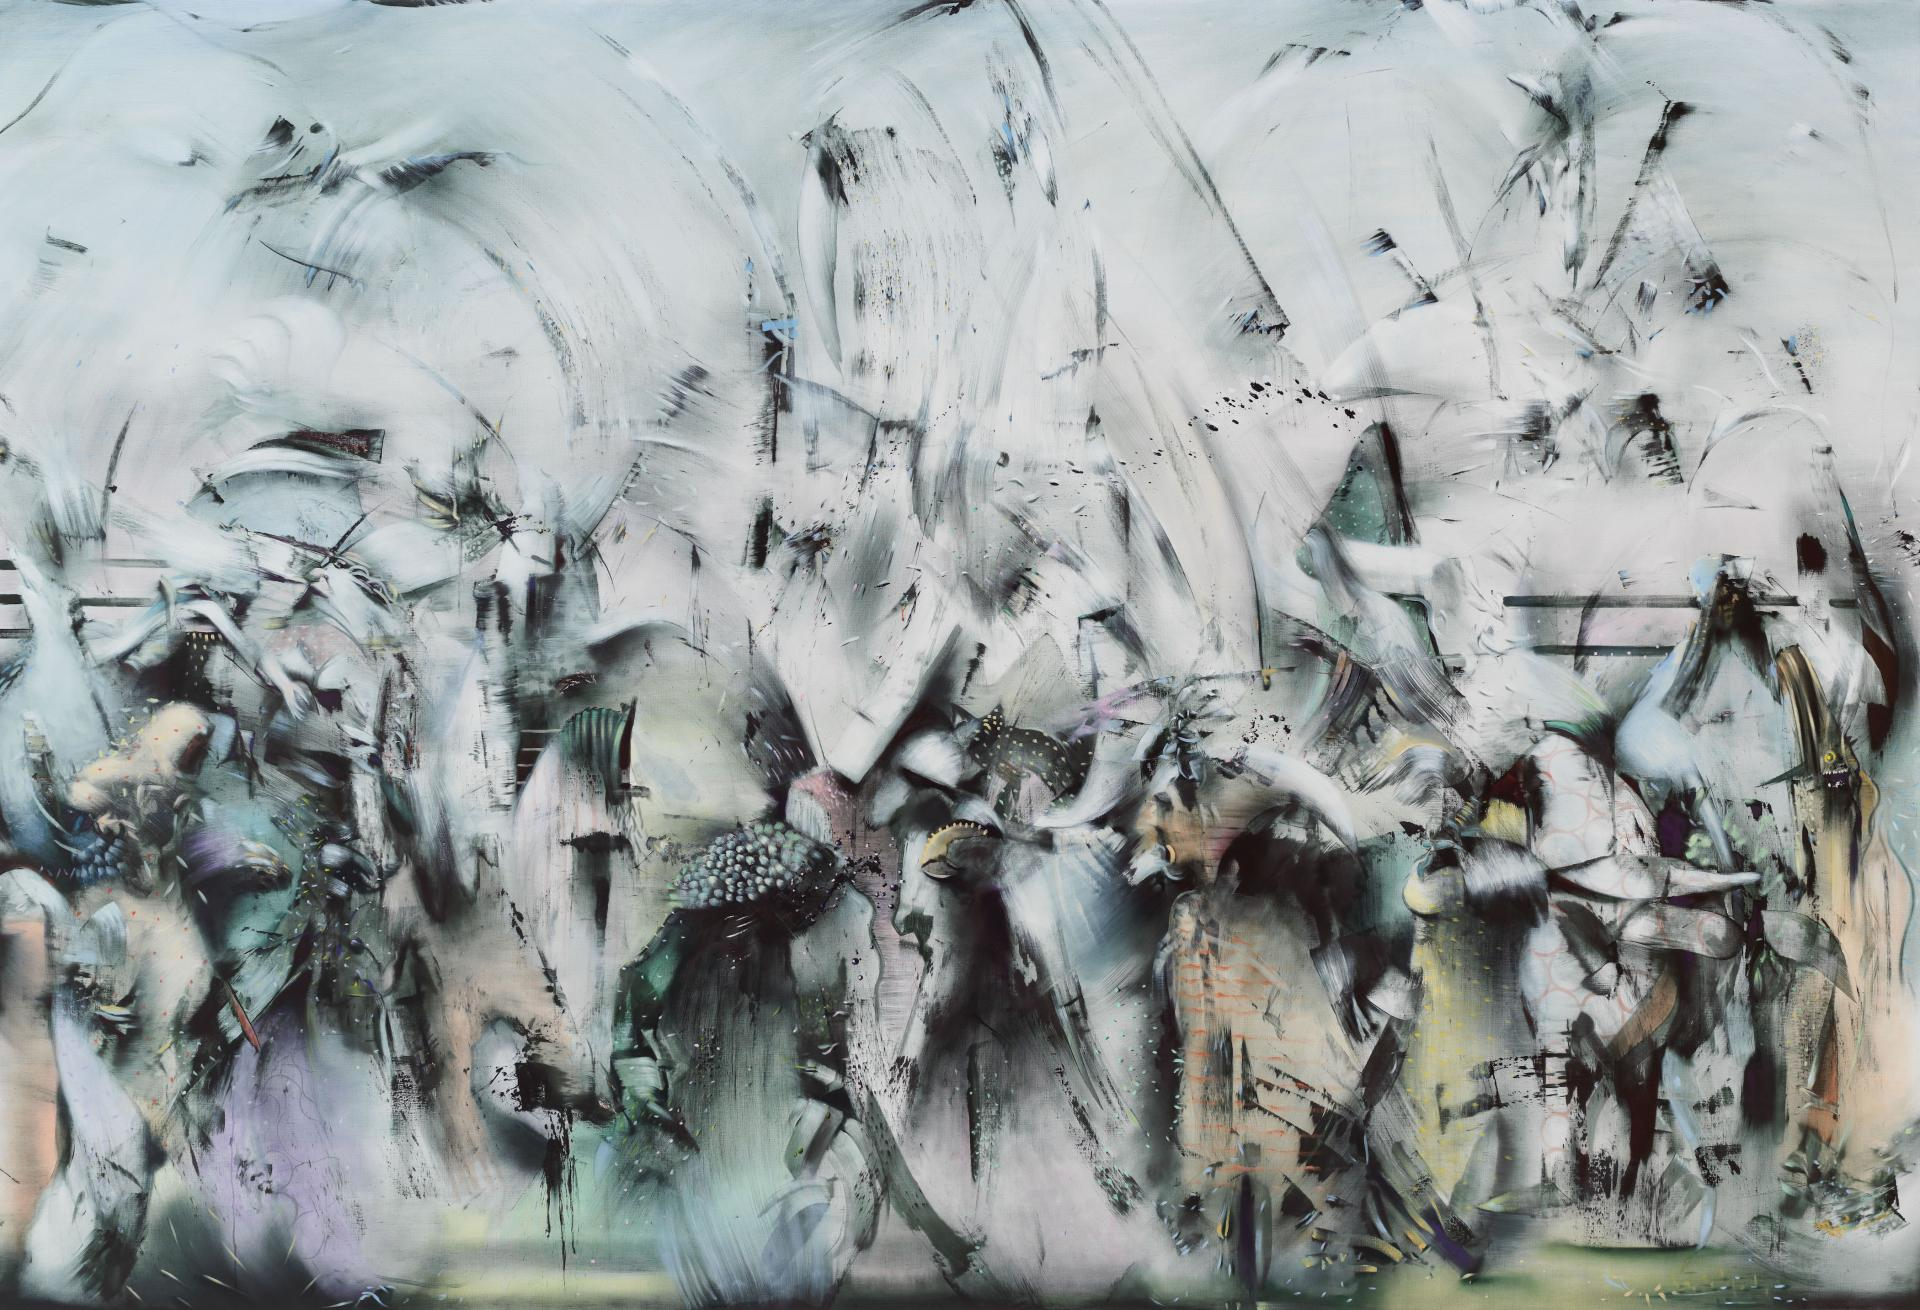 Ali Banisadr, Riders on the Storm